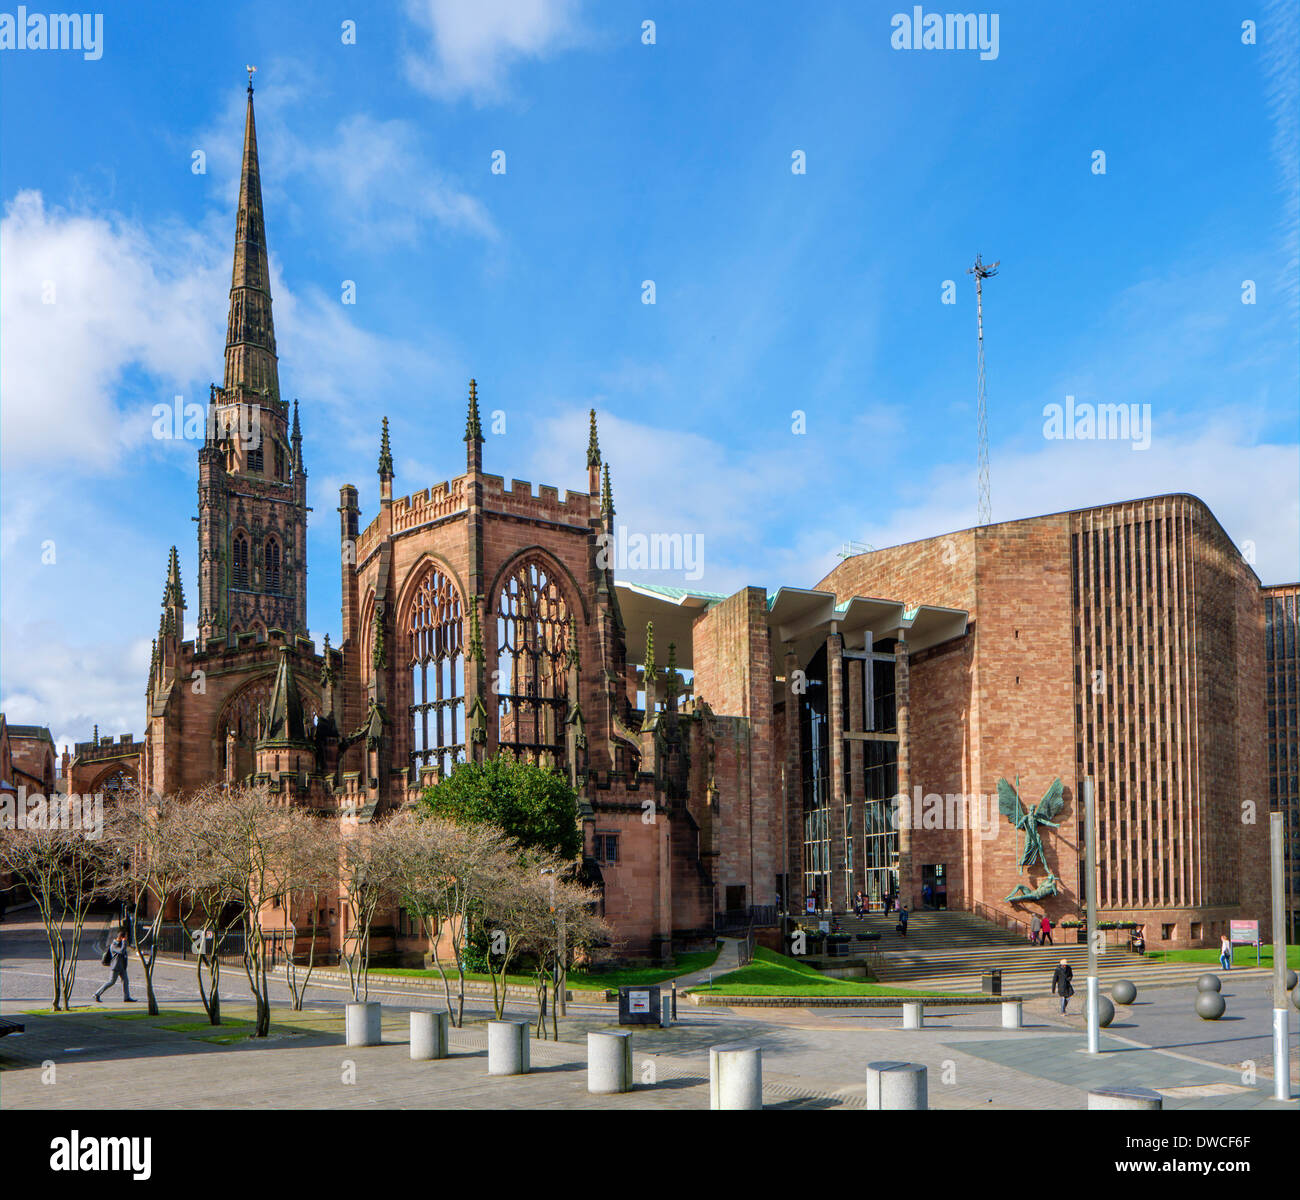 Coventry Cathedral ( St Michael's Cathedral ) old and new buildings, Coventry, West Midlands, England, UK - Stock Image